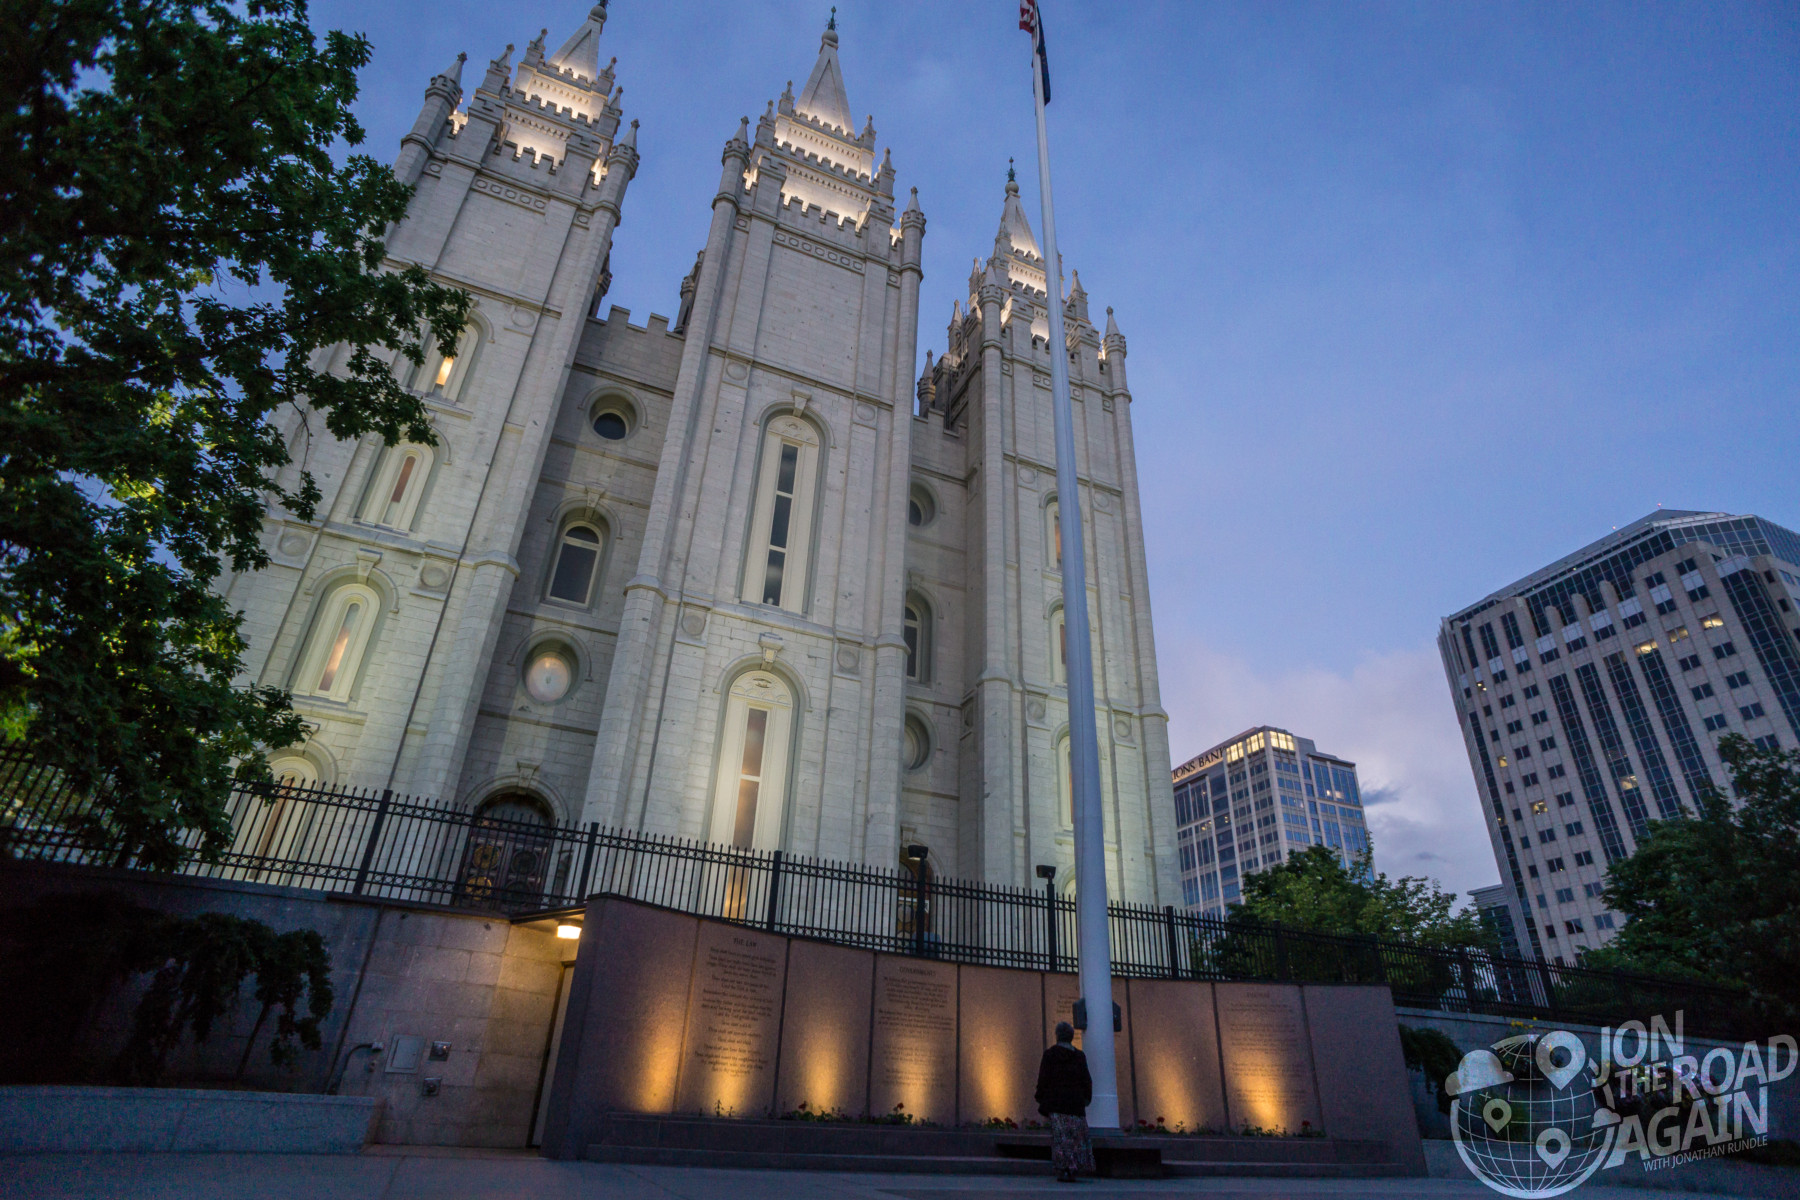 Temple Square in Salt Lake City, UT